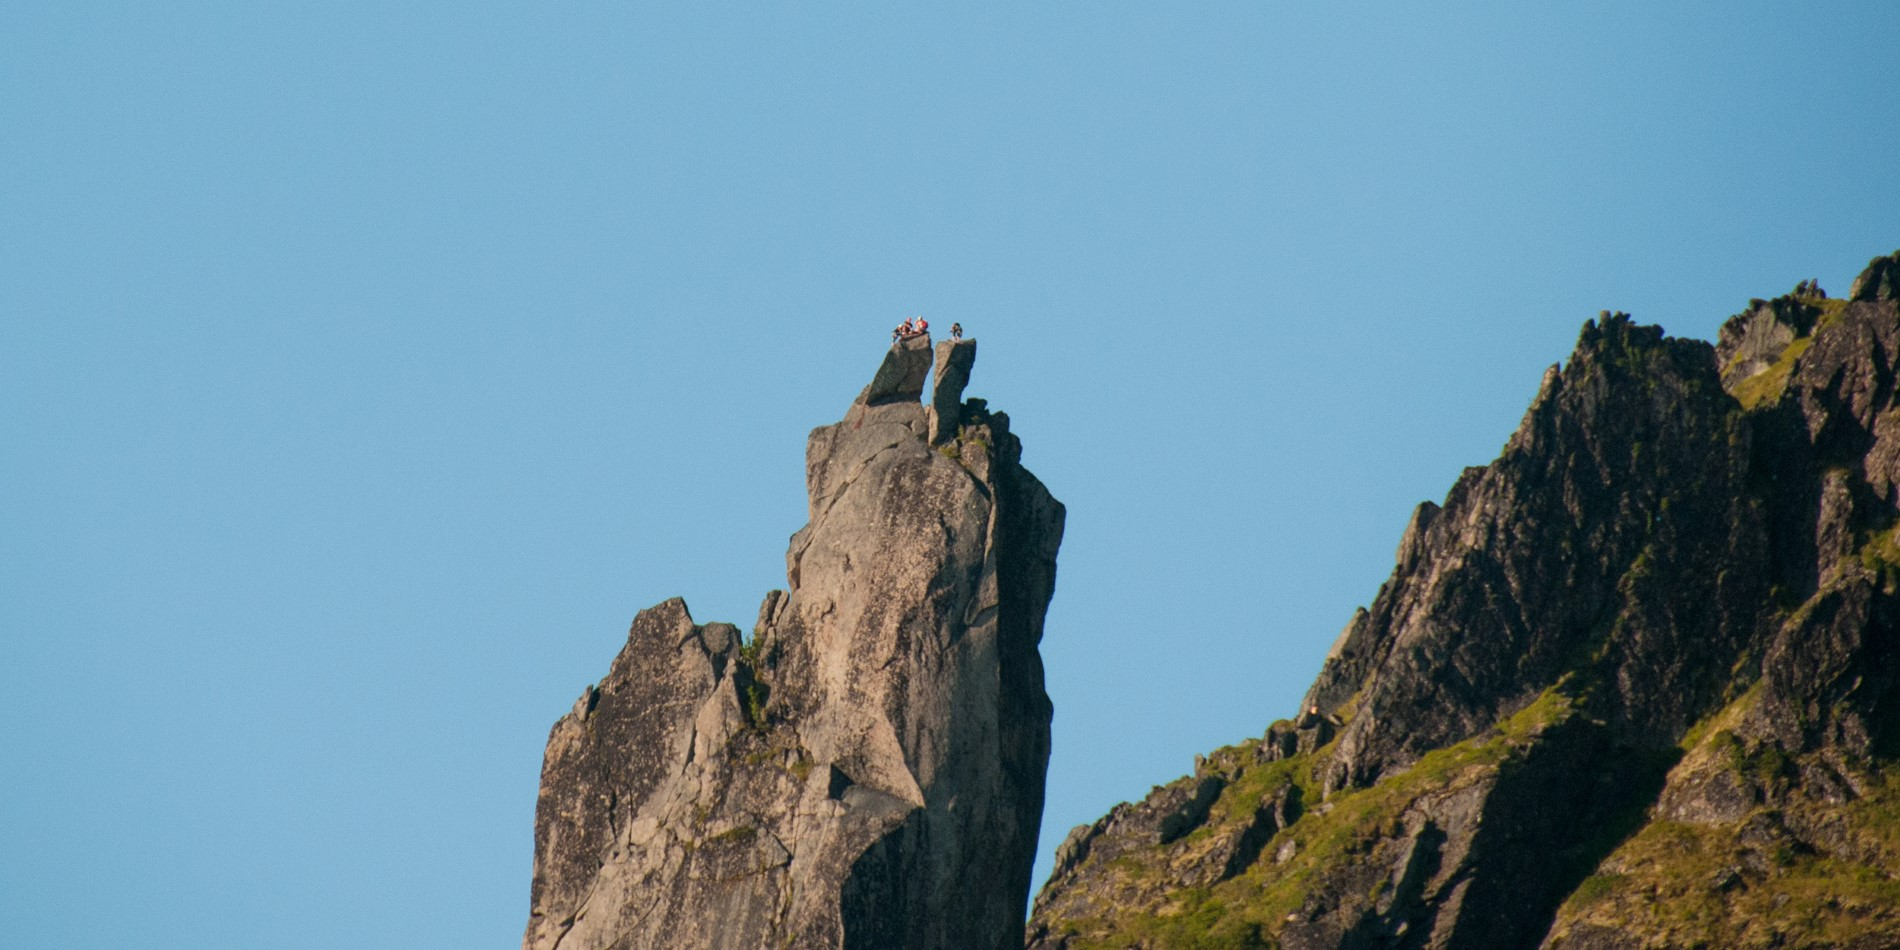 Climbers on top of Svolværgeita